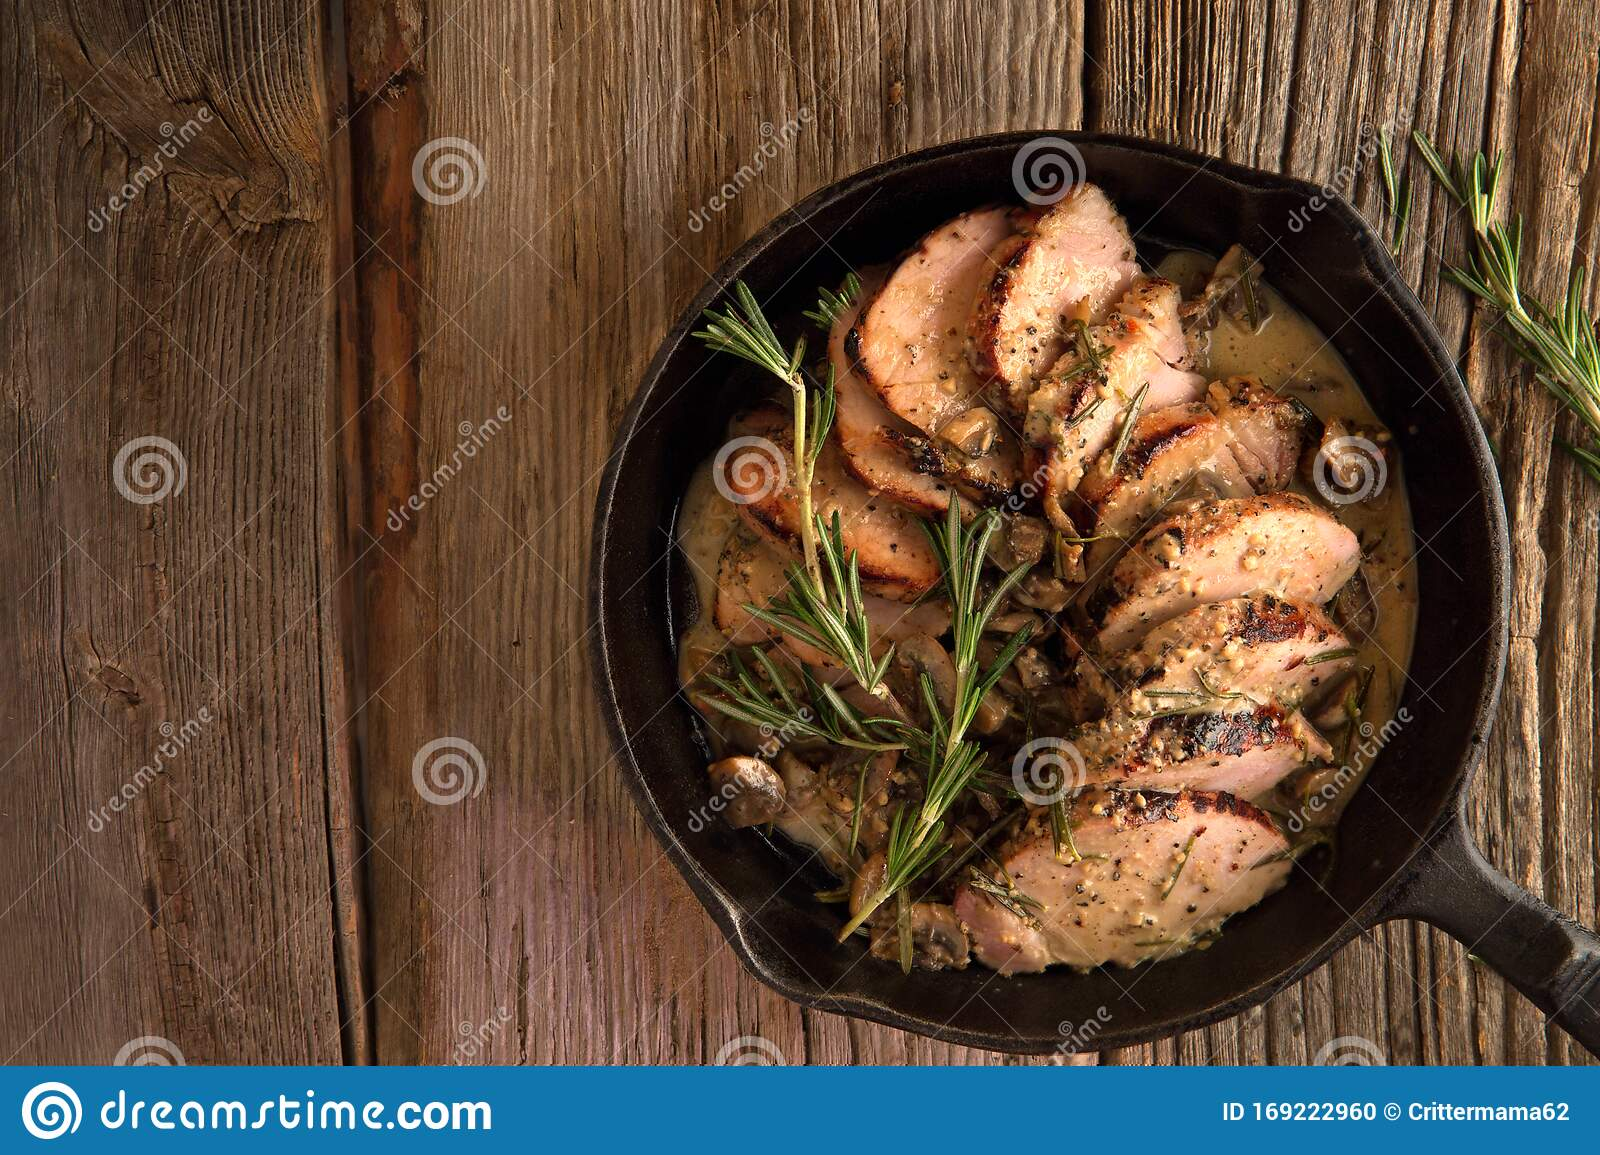 Pork Medallions With Cream Sauce In Cast Iron Pan Stock Photo Image Of Cast Garlic 169222960